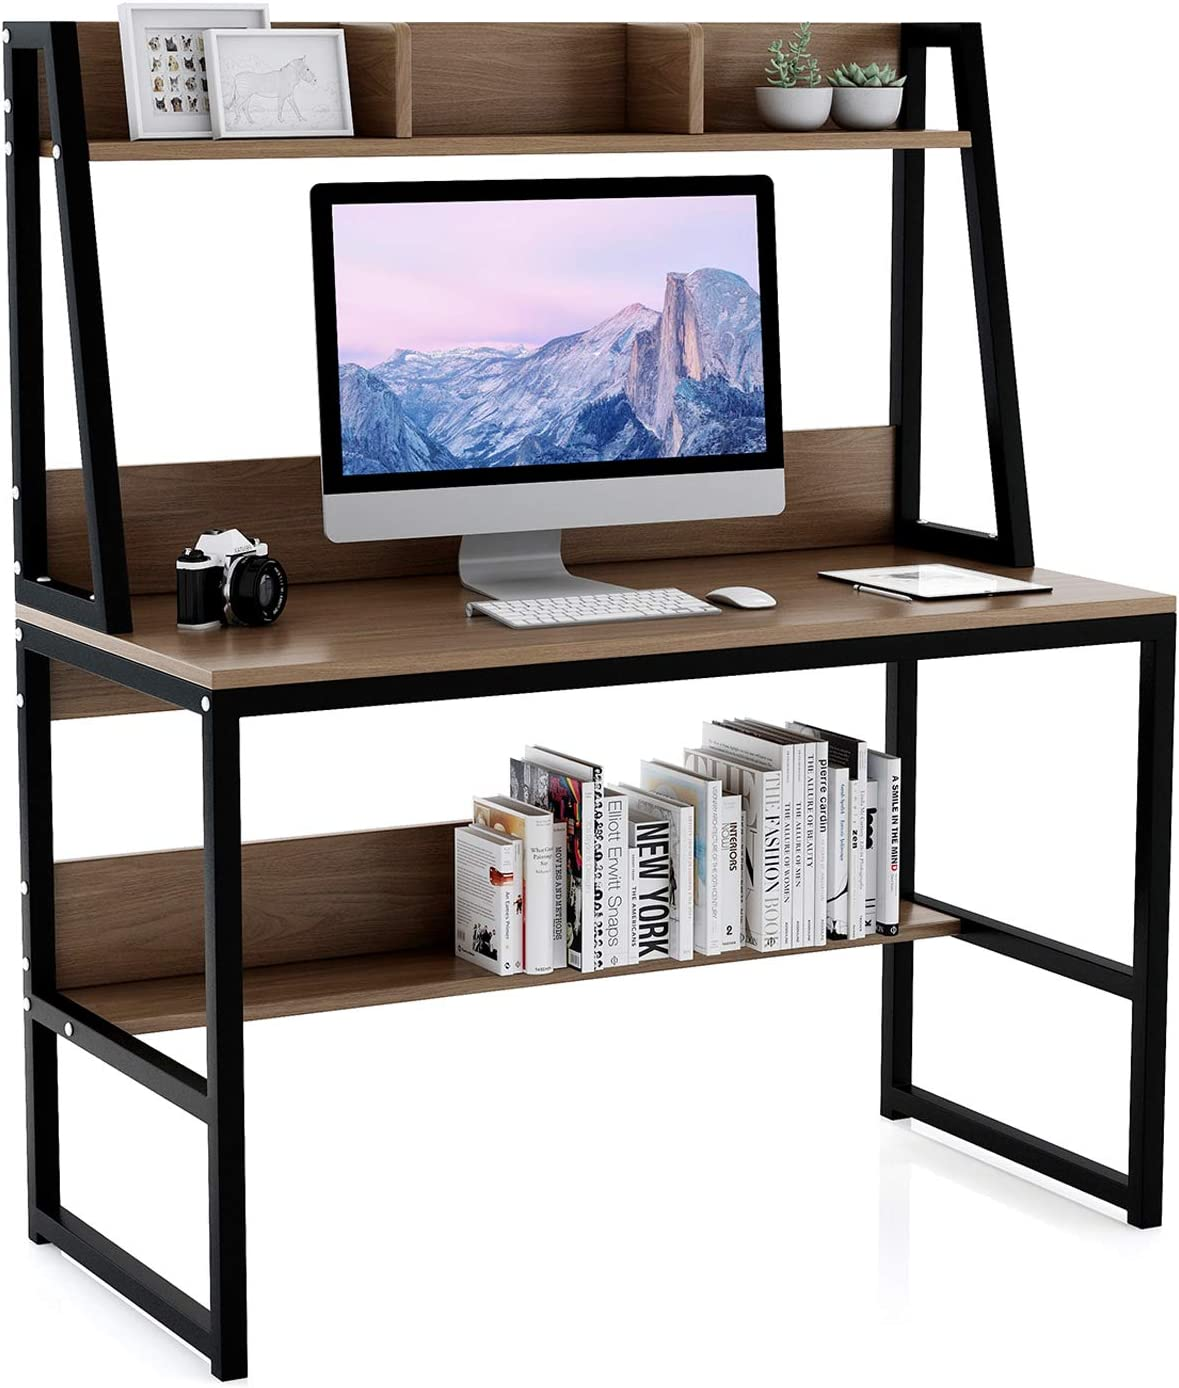 Computer Desk Our shop most popular with Hutch and Bookshelf 47.2 Writing Study - Quantity limited inch